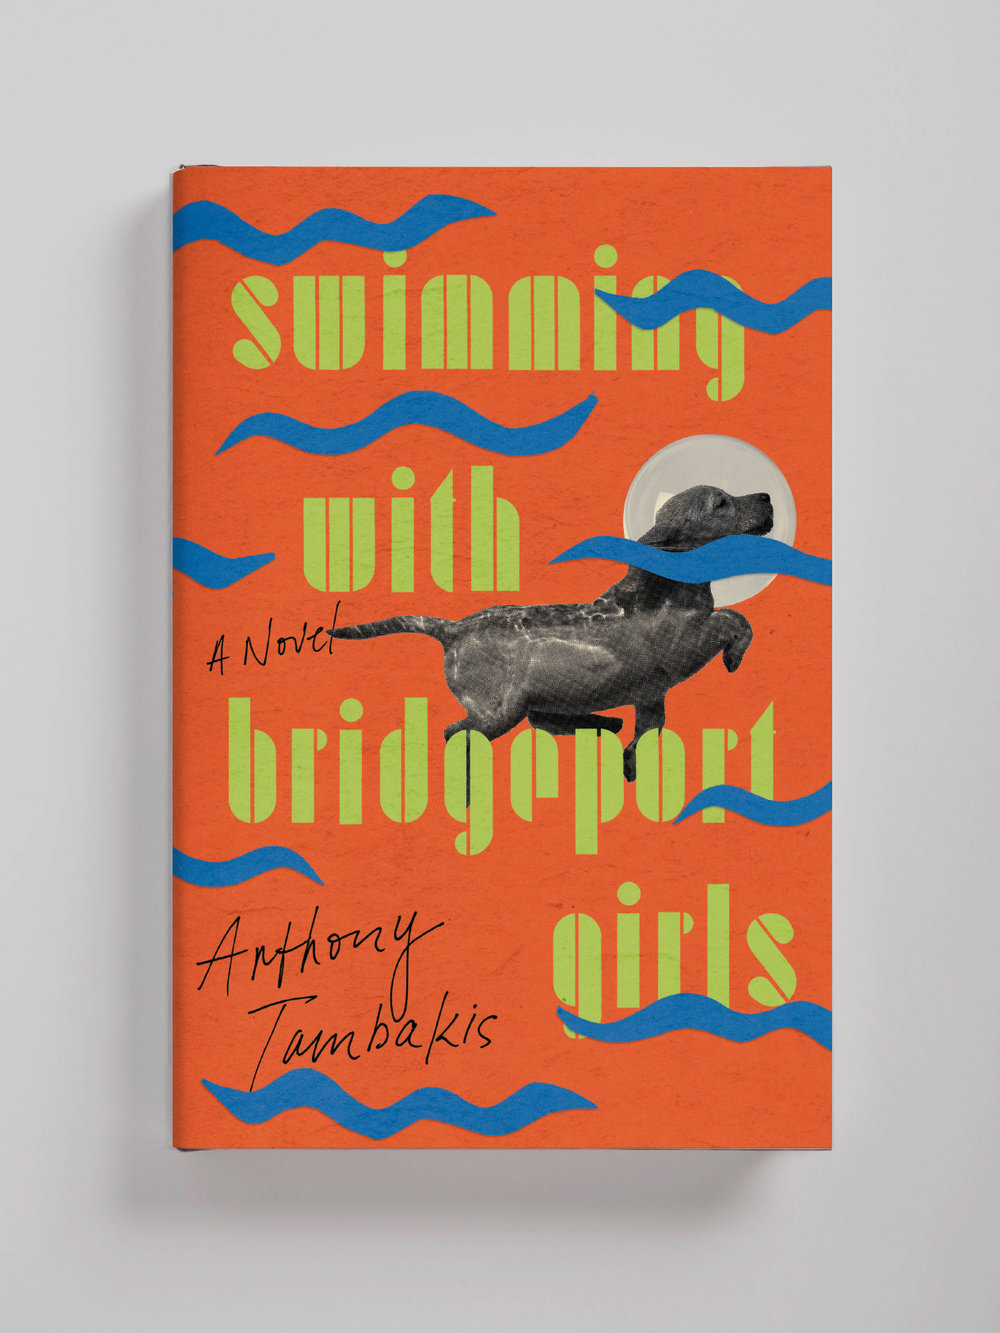 Lauren Peters-Collaer—Swimming with Bridgeport Girls unused